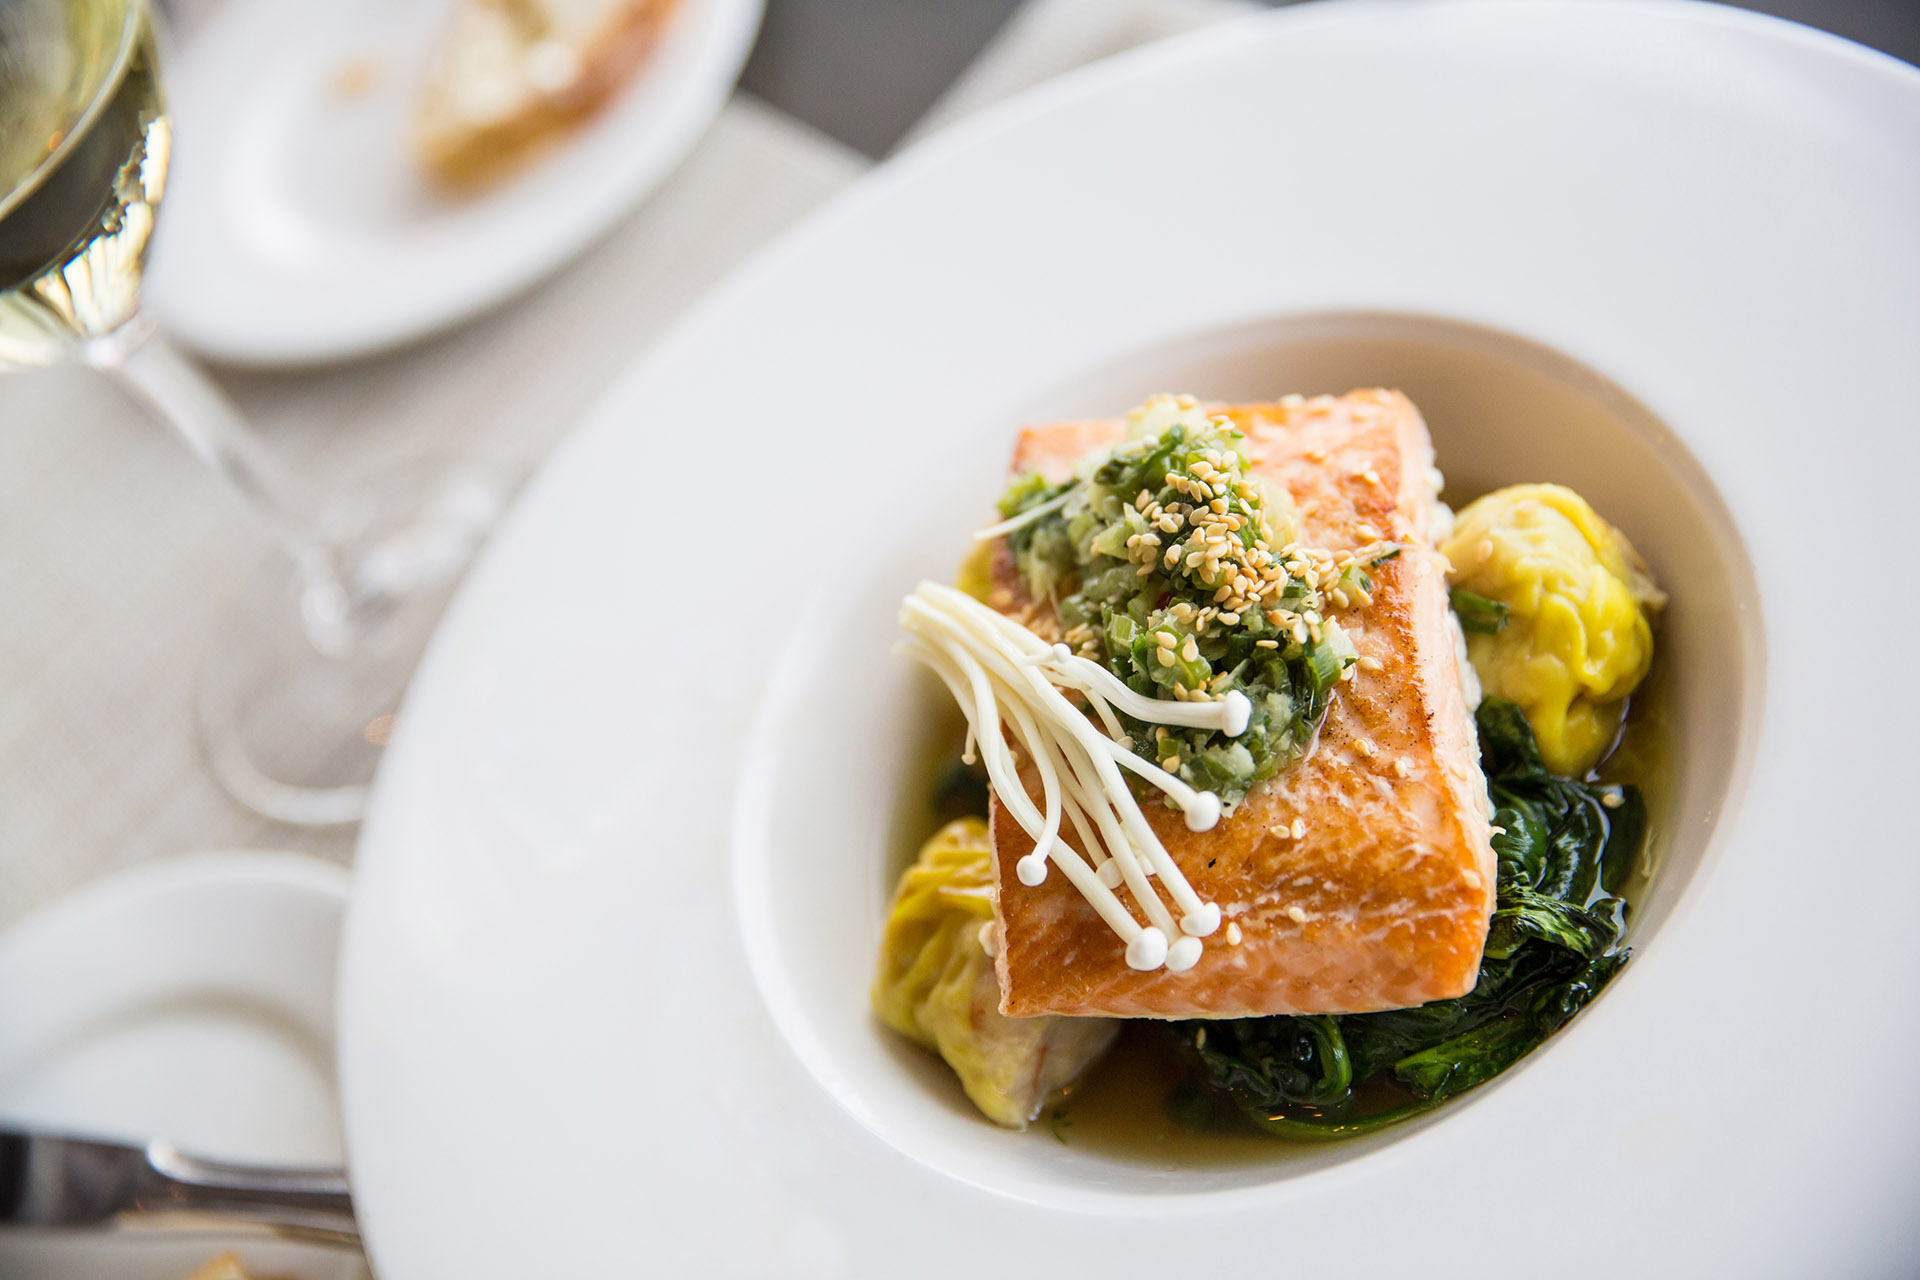 Pan seared Atlantic Salmon with spinach, toasted sesame seeds and enoki mushroom gourmet dinner paired with white wine